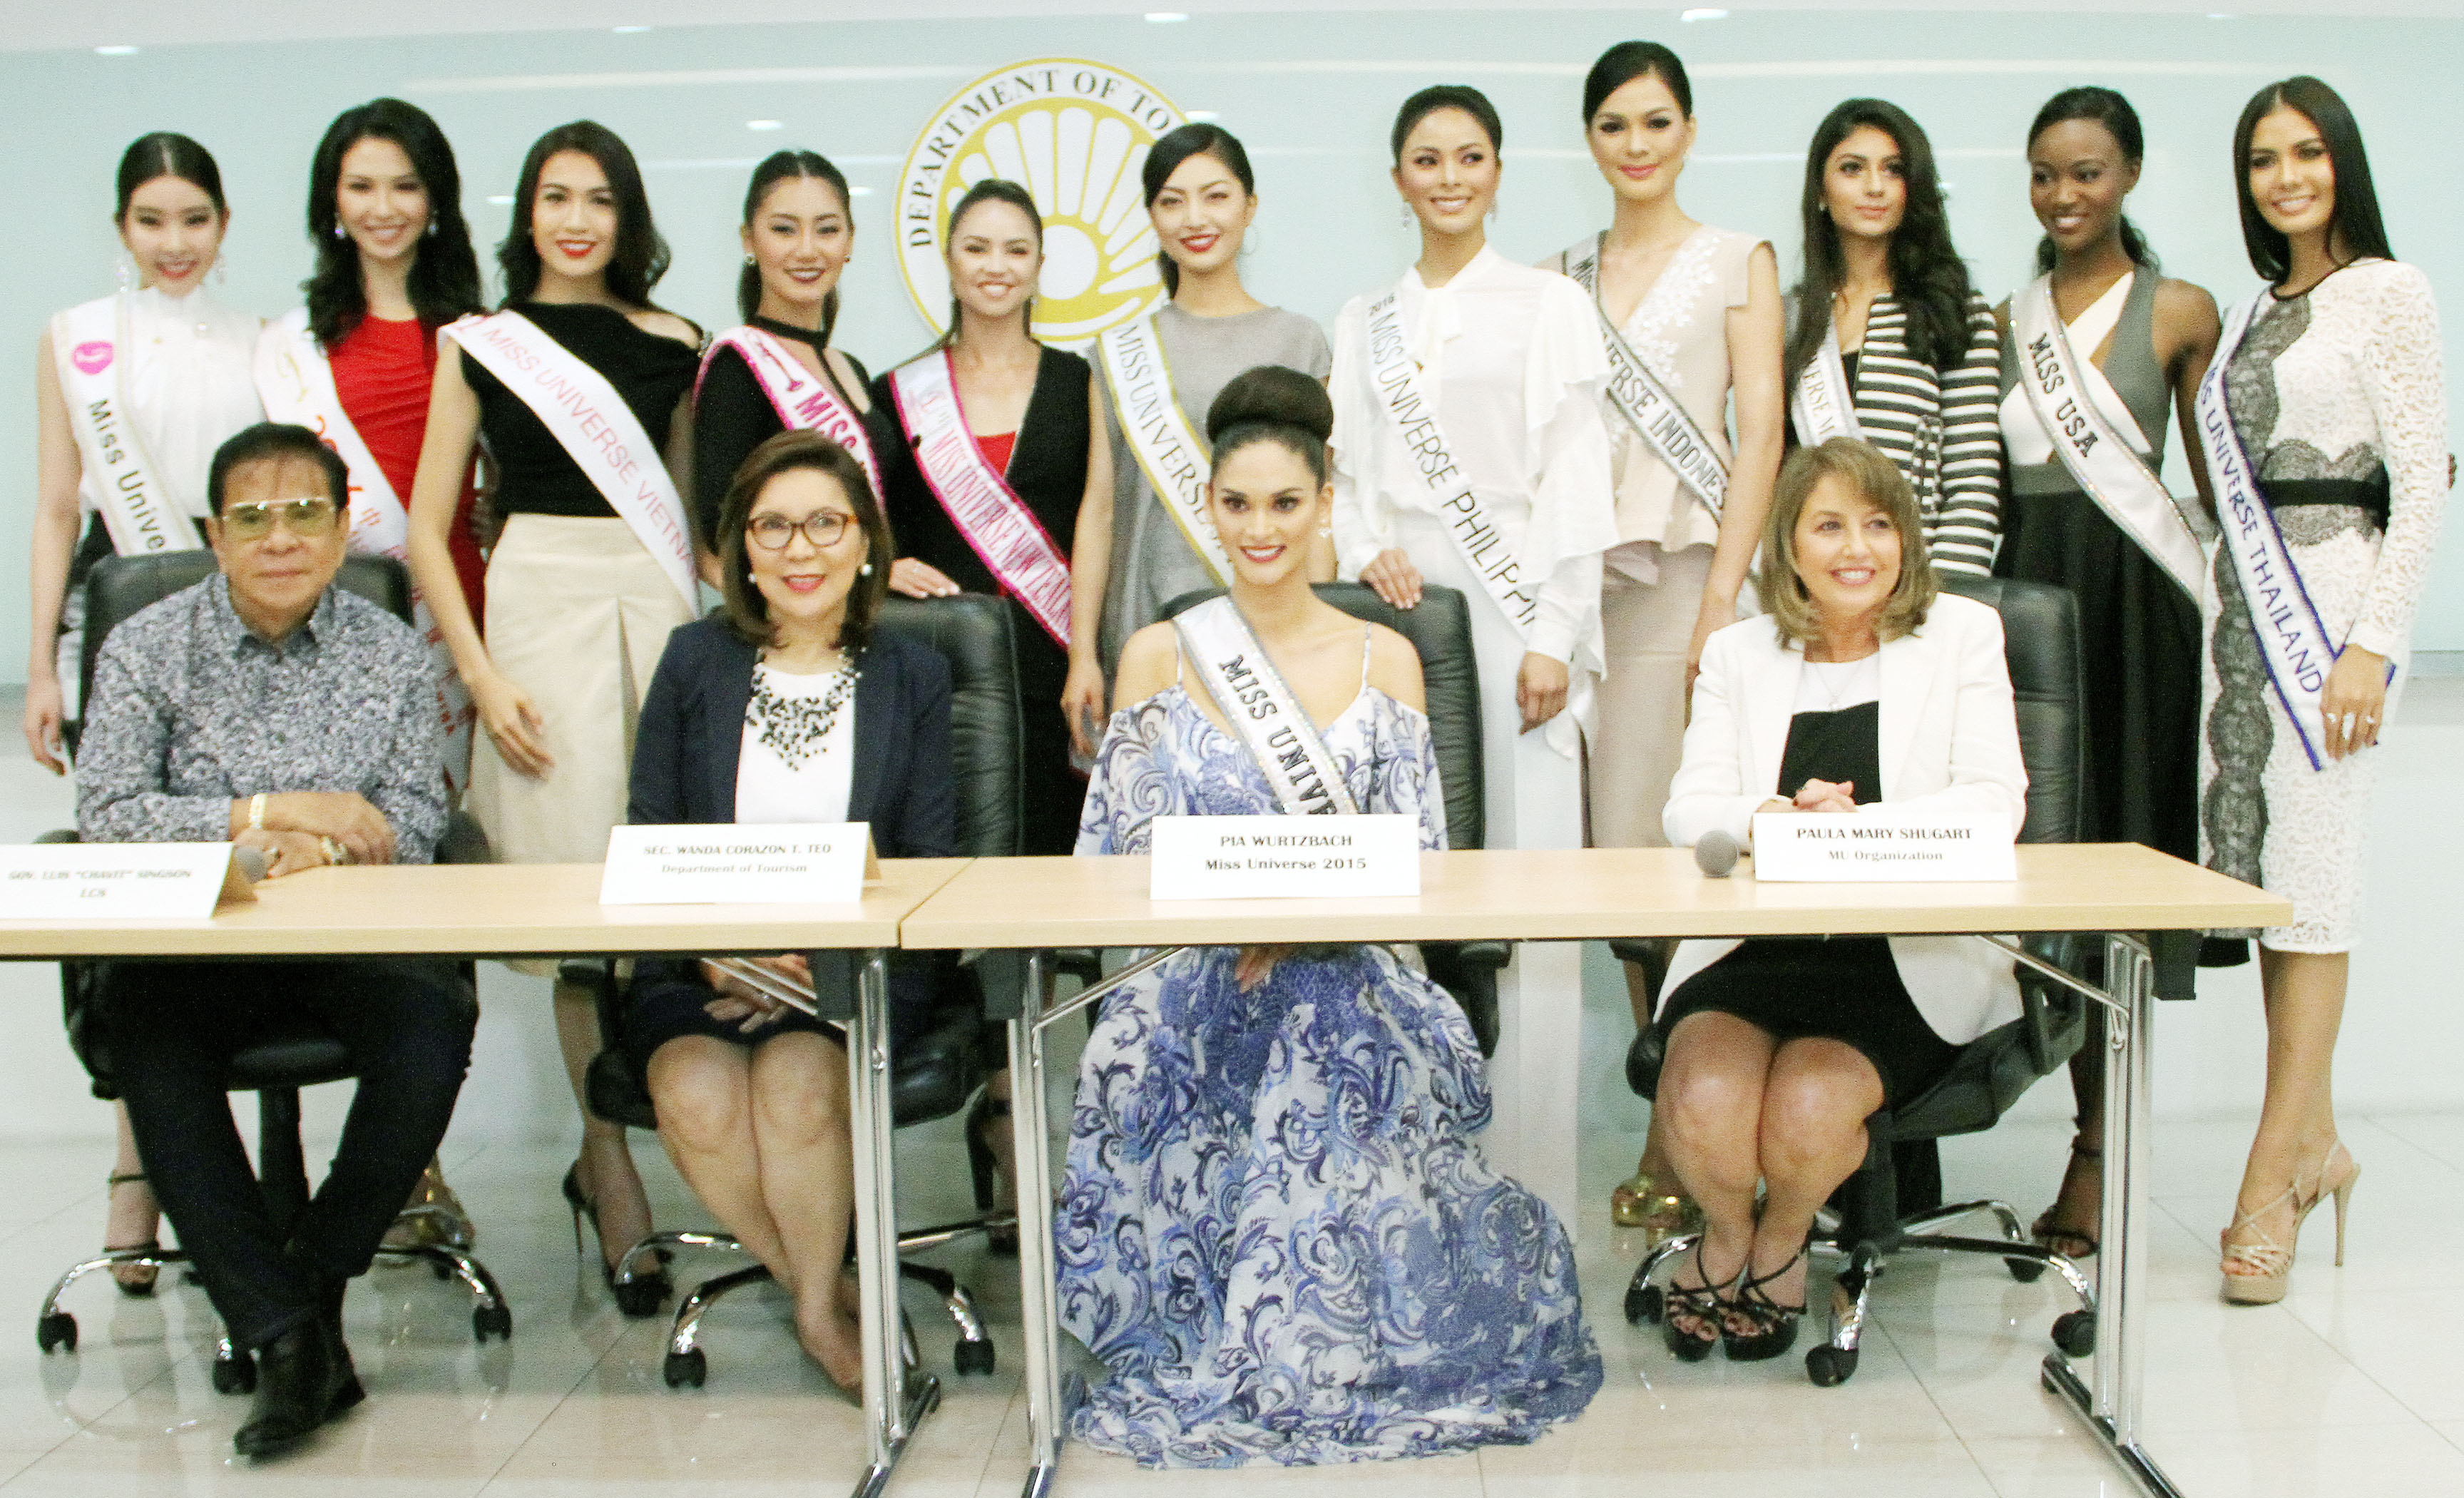 Eleven Miss Universe 2016 candidates were presented during the media briefing held at the Department of Tourism (DOT) head office in Makati City on Monday (Dec. 12, 2016). They are (standing from left to right) Miss Korea Jenny Kim, Miss China Joyce Li, Miss Vietnam Dang Thi Le Hang, Miss Myanmar Htet Htet Tun, Miss New Zealand Tania Pauline Dawson, Miss Japan Sari Nakazawa, Miss Philippines Maxine Medina, Miss Indonesia Kezia Roslin Cikita Warouw, Miss Malaysia Kiranmeet Kaur Balijeet Singh, Miss USA Deshauna Barber, and Miss Thailand Chalita Suansane. The Philippines previously hosted the Miss Universe pageant twice, in 1974 and 1994. (MNS photo)